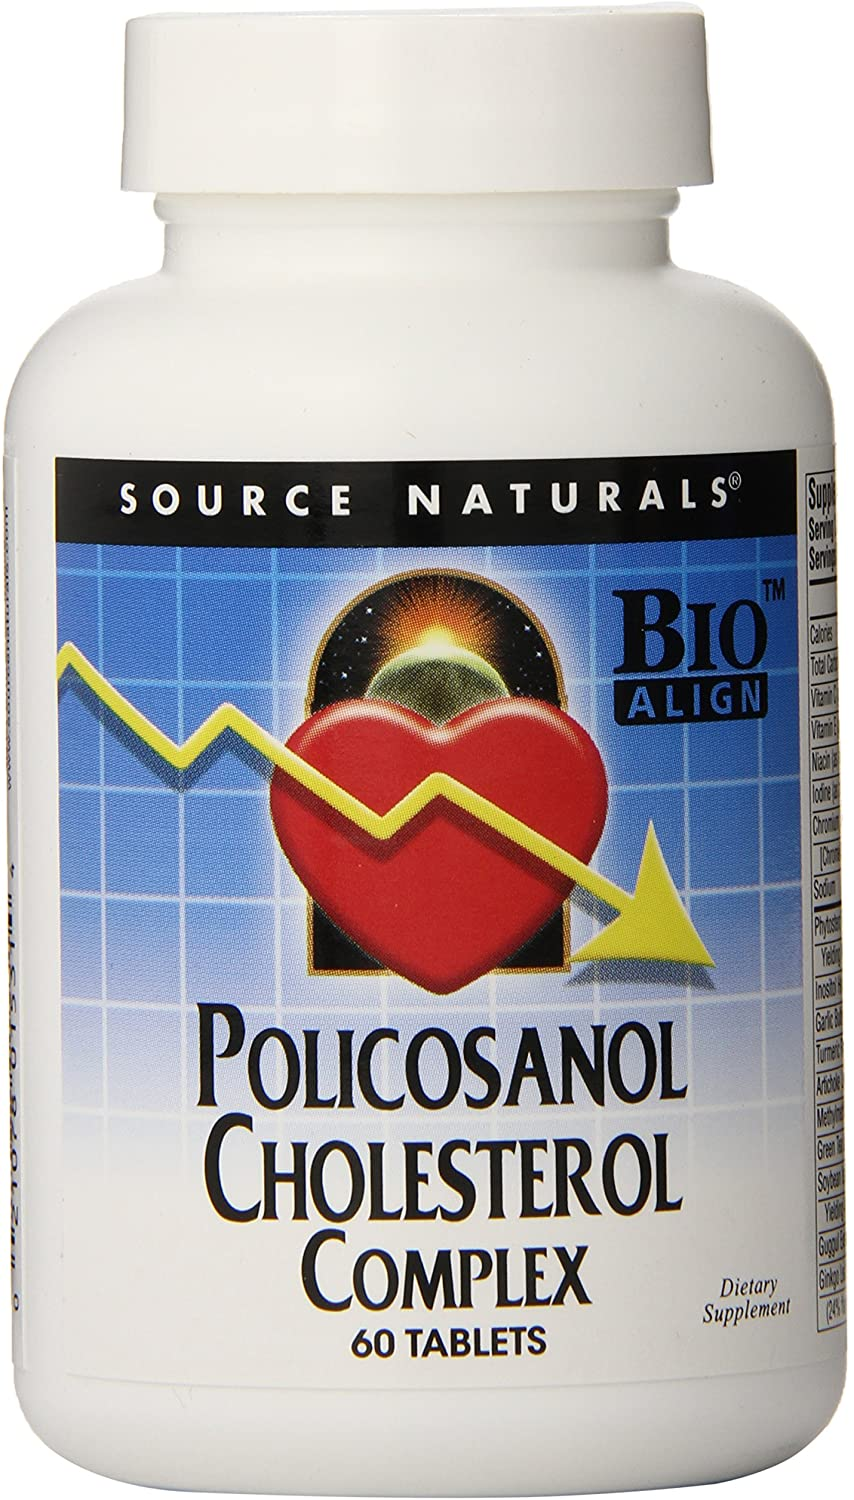 Source Naturals Policosanol Cholesterol Complex, Multi-System Support for Healthy Lipid Levels, 60 Tablets